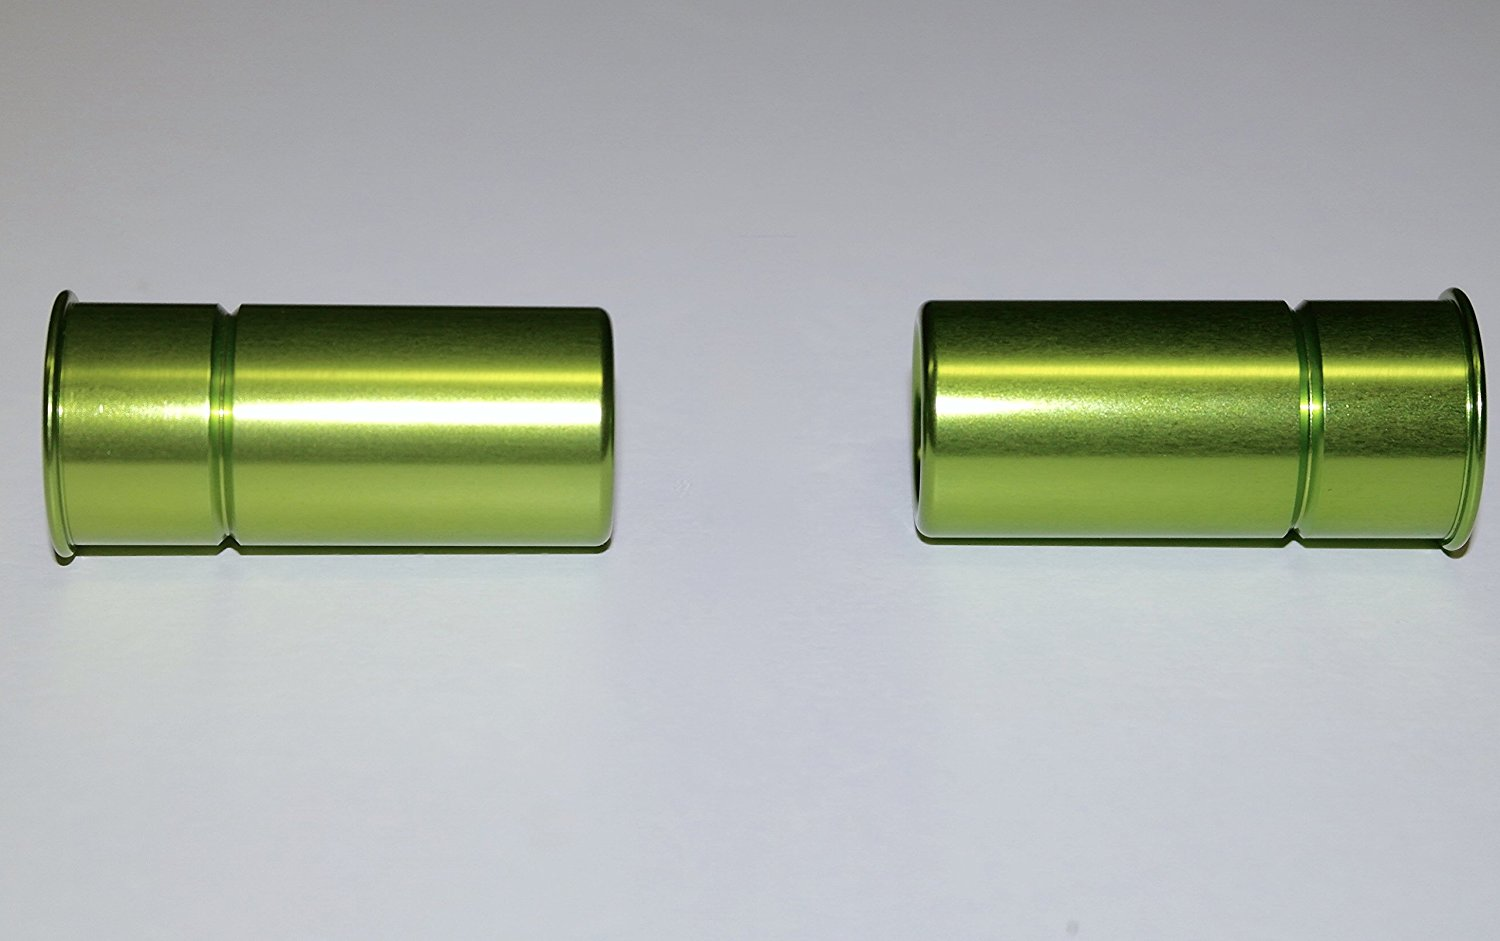 12 bore gauge snap caps